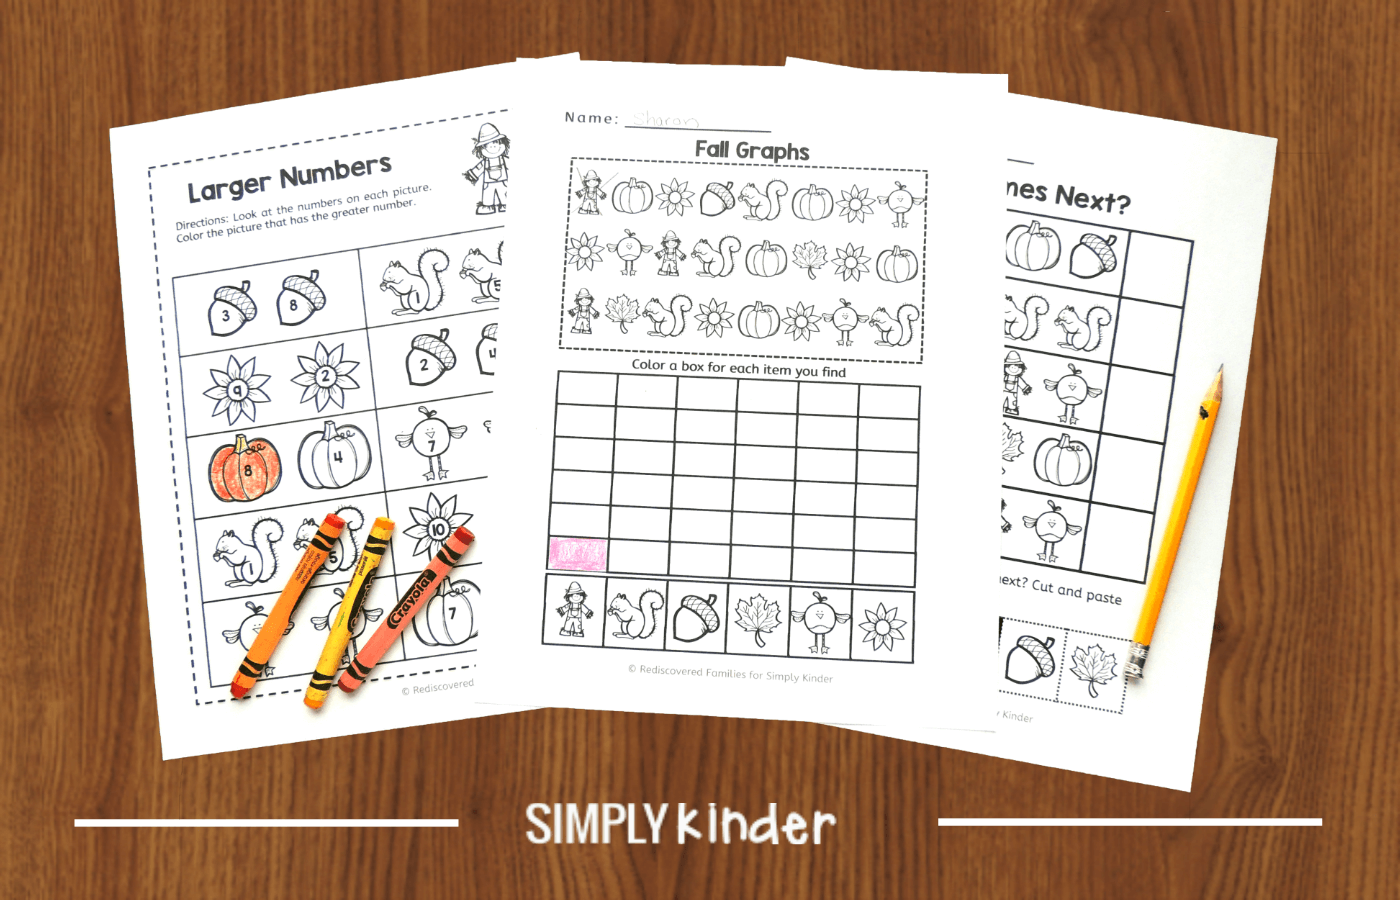 Free Fall Math Worksheets To Use With Kinders - Simply Kinder [ 900 x 1400 Pixel ]